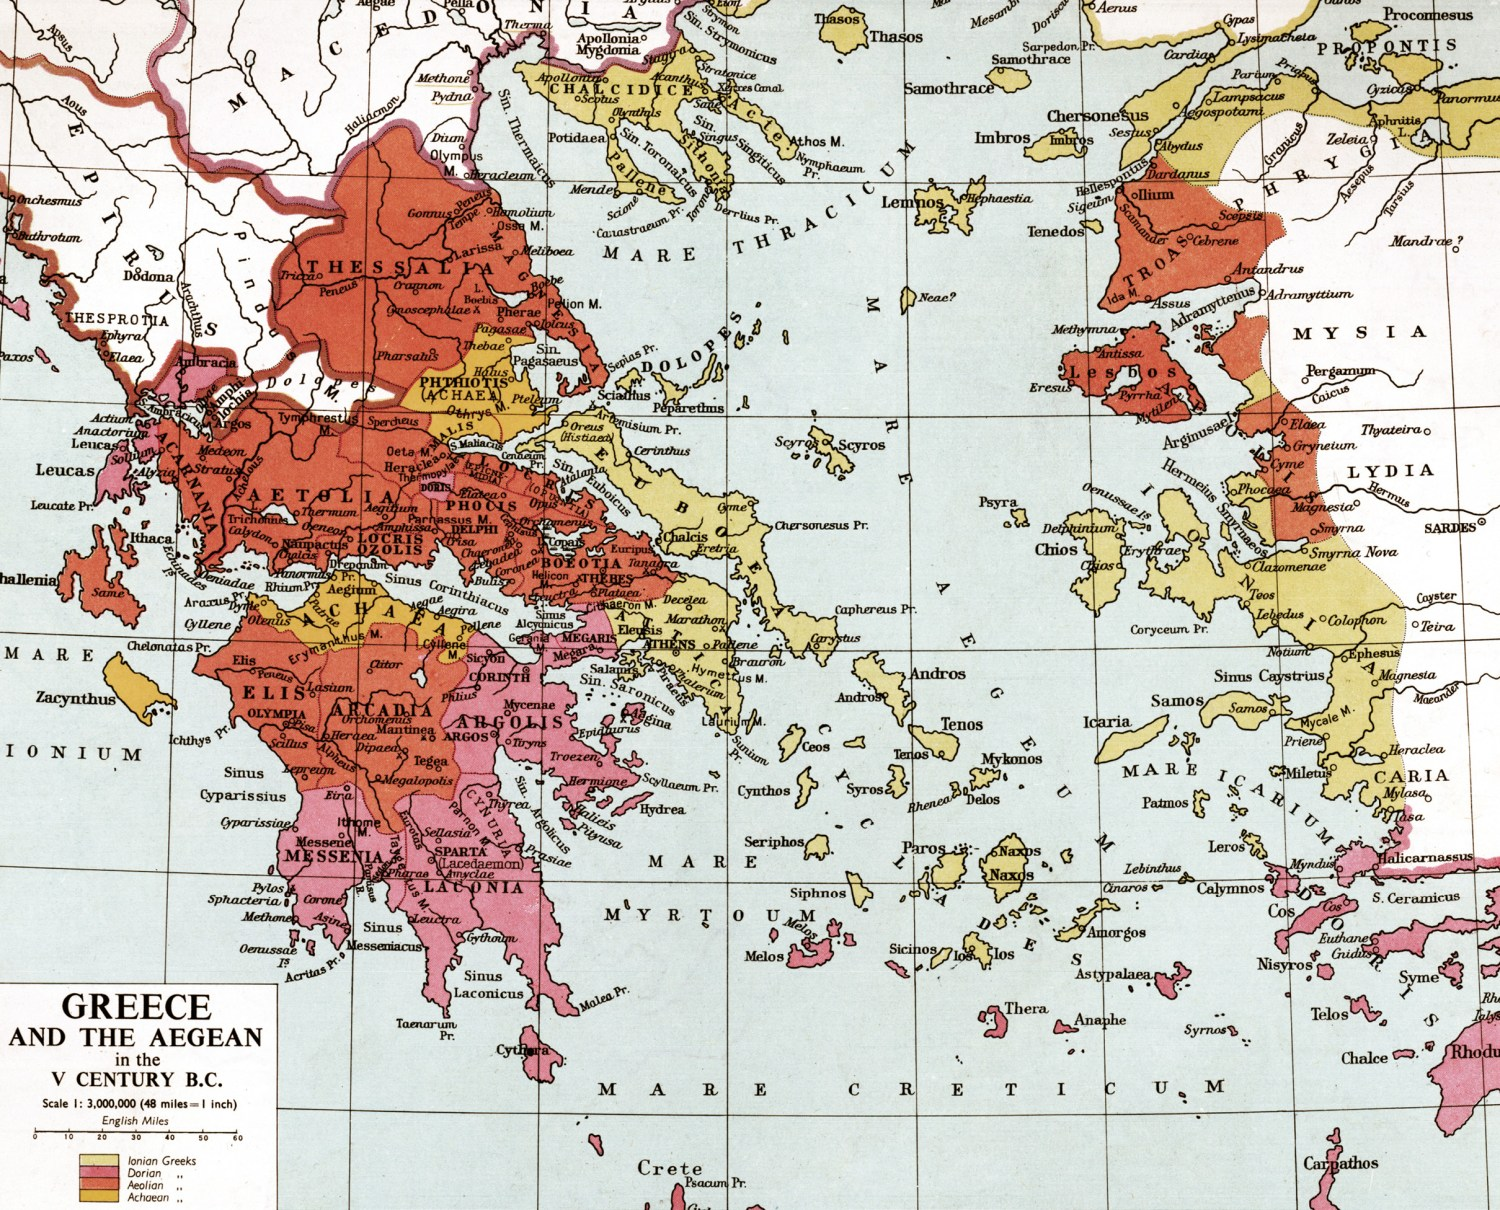 below Ancient Greece. Sparta controlled the southern Peloponnesian provinces of Laconia and Messenia, and sought hegemony across the rest of the Peloponnese, in order to isolate her main rival, Argos, and to secure the Isthmus of Corinth, the invasion route from the north.